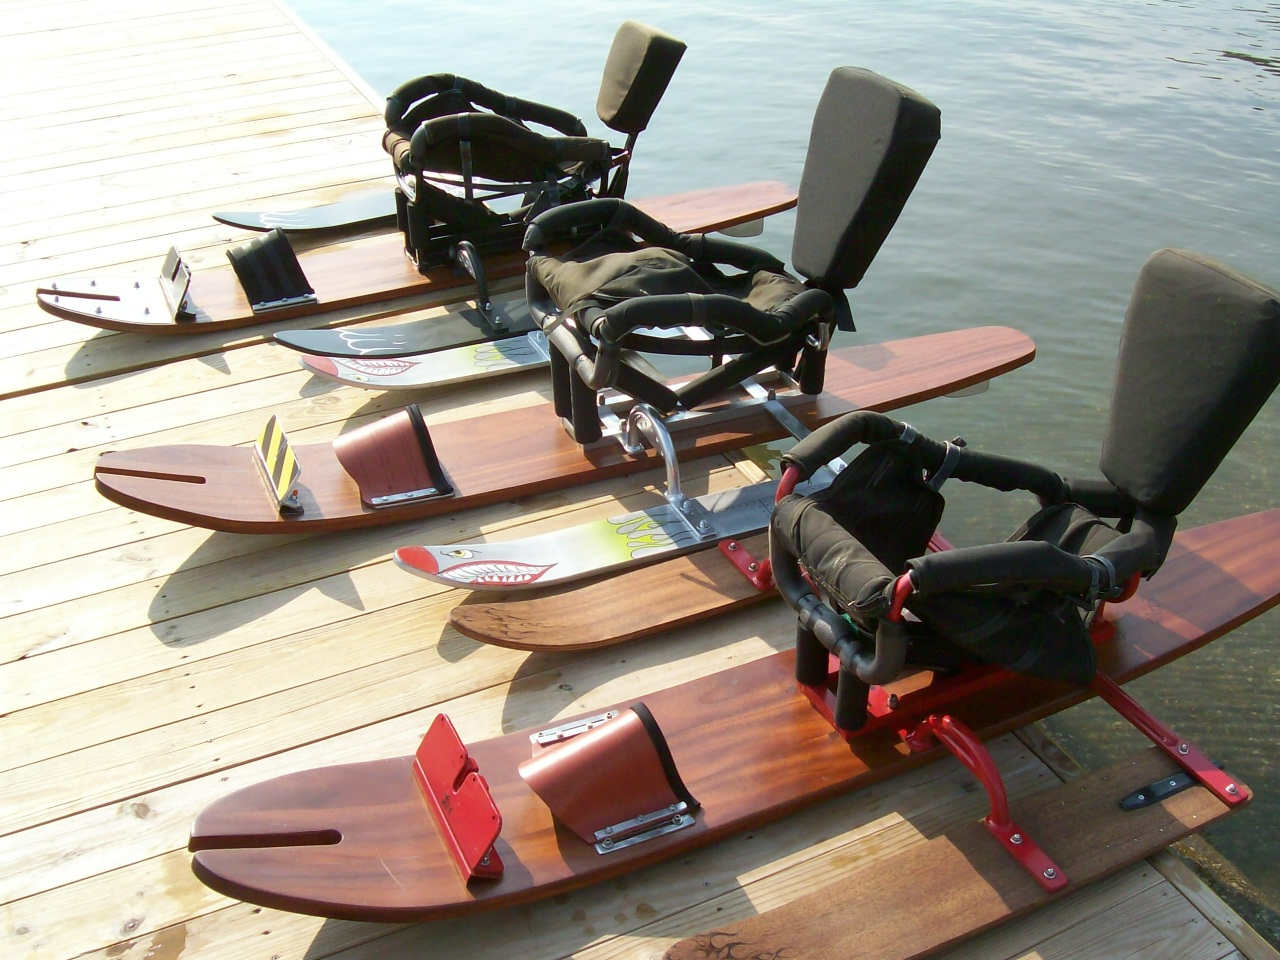 Water skiing equipment specially designed for Riddle Center residents